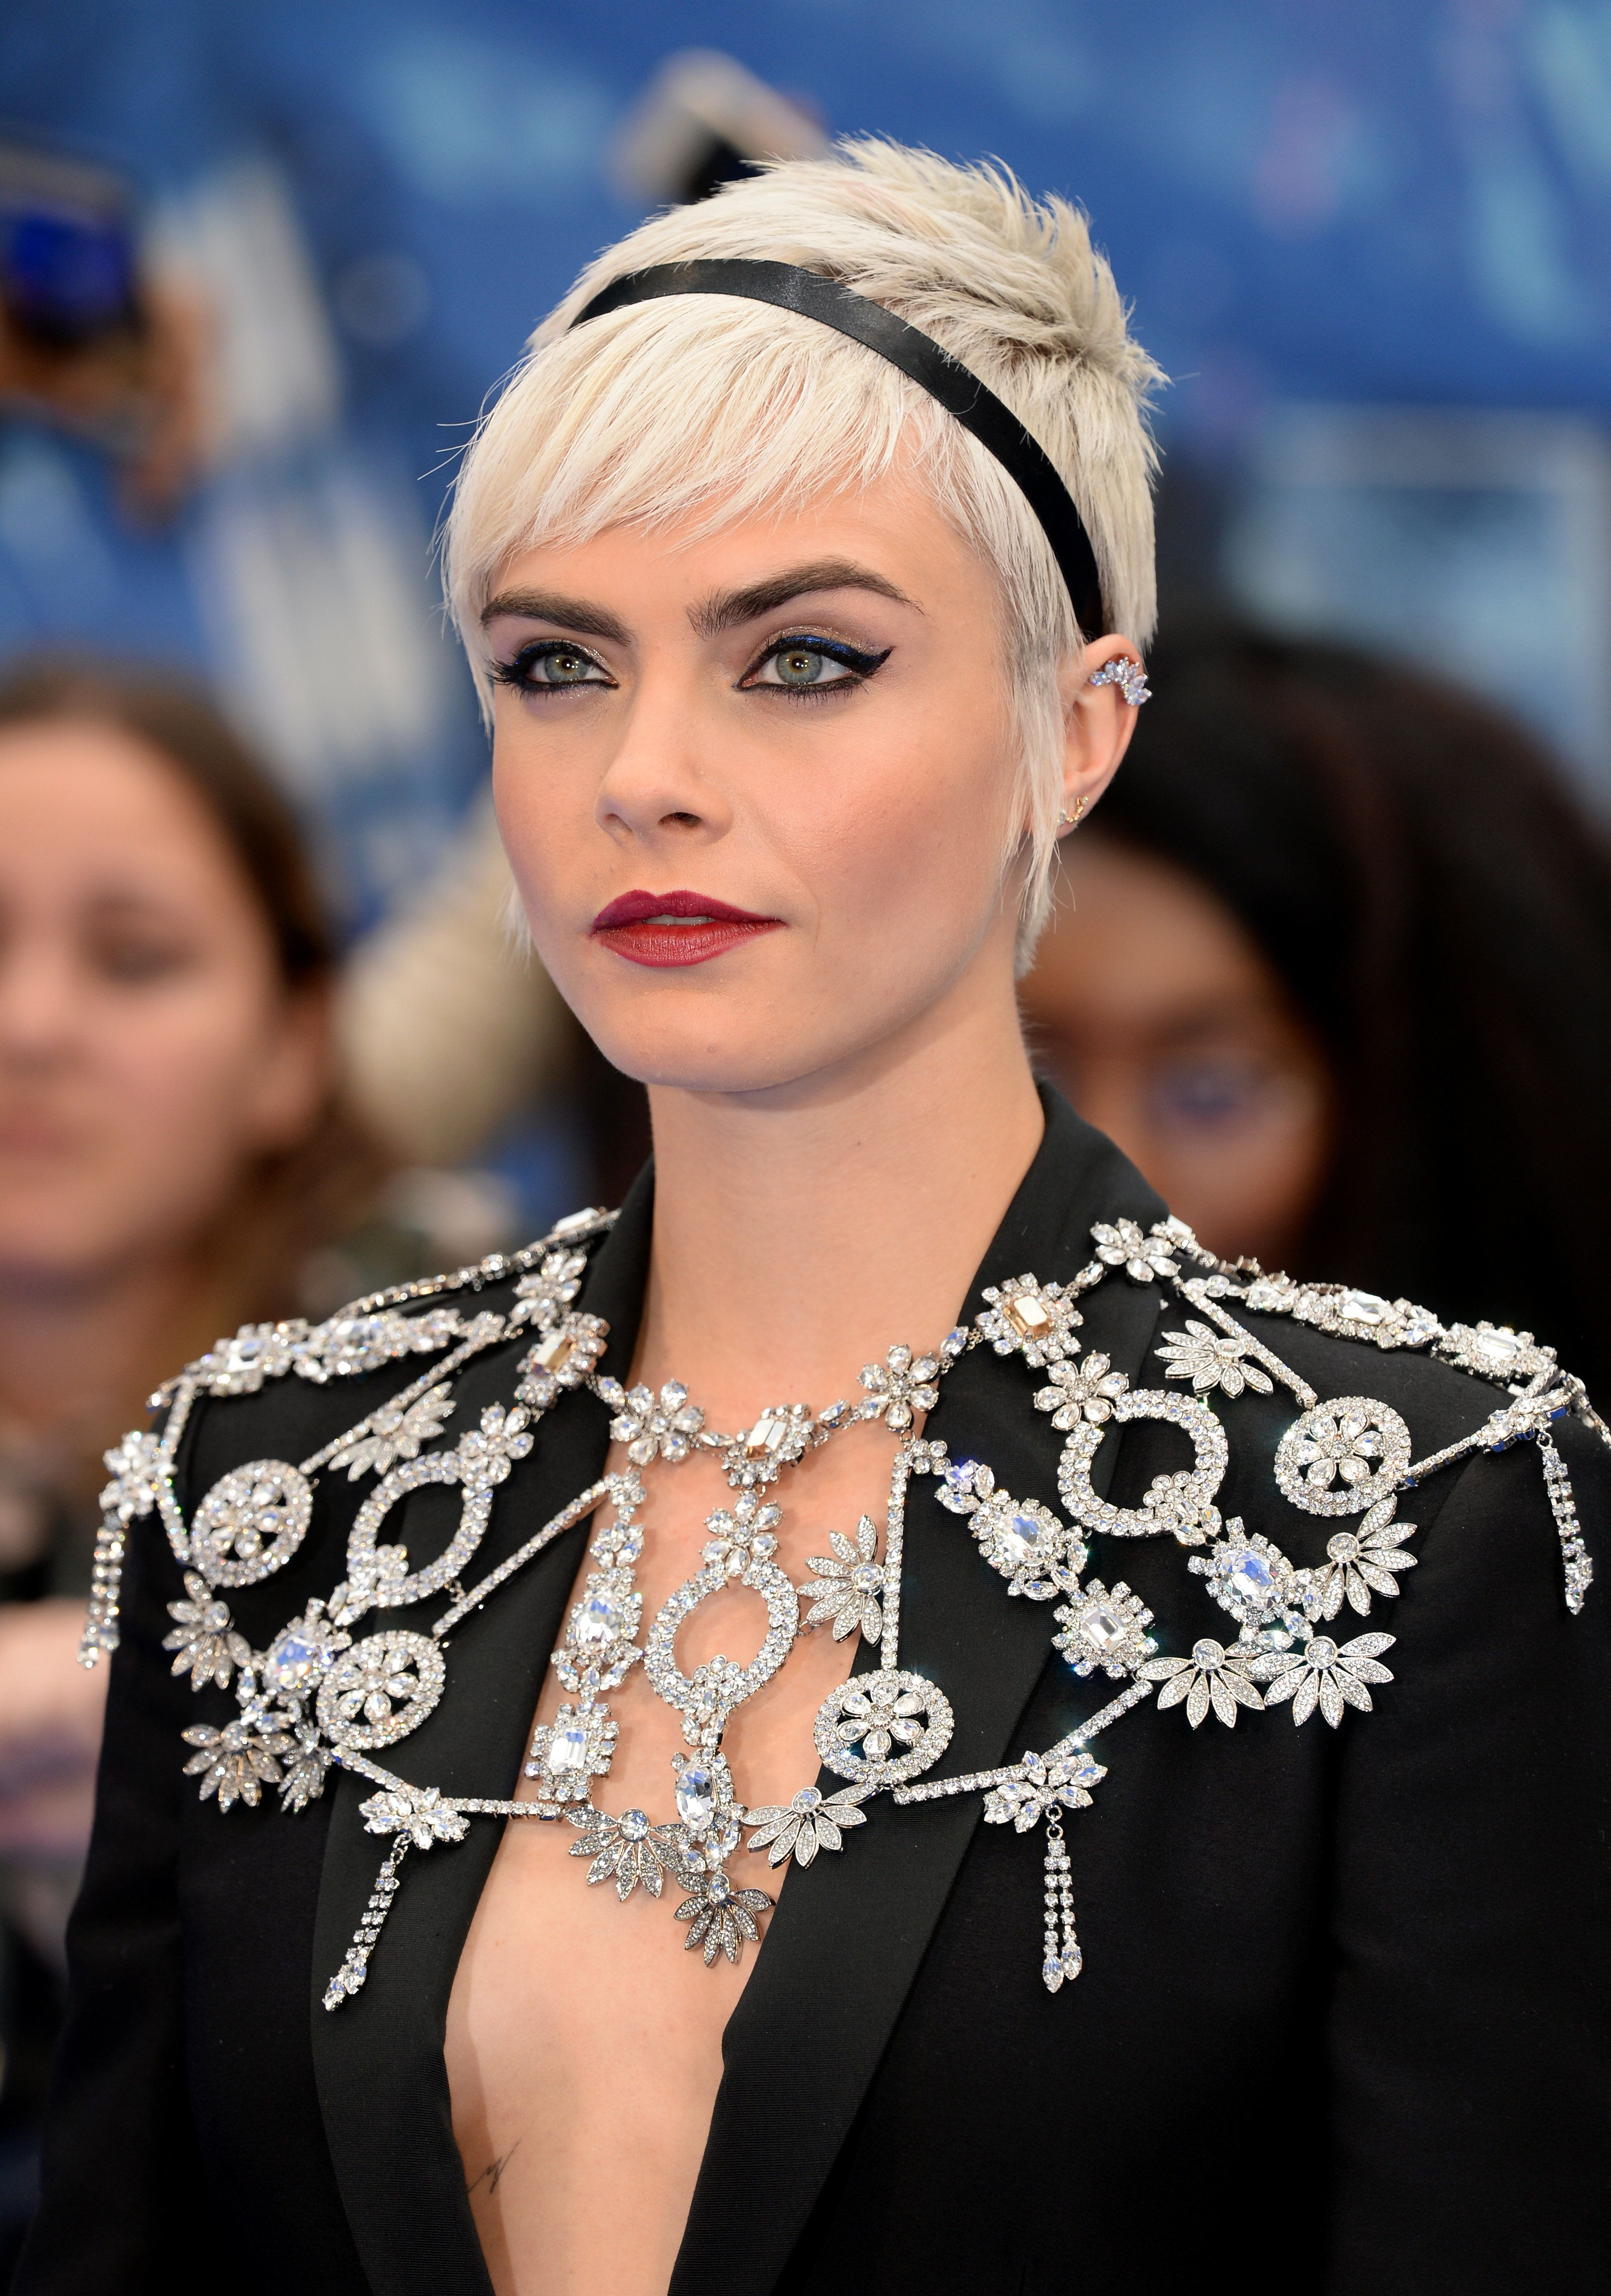 Cara Delevingne Details 'Odd And Uncomfortable' Harvey Weinstein Experience